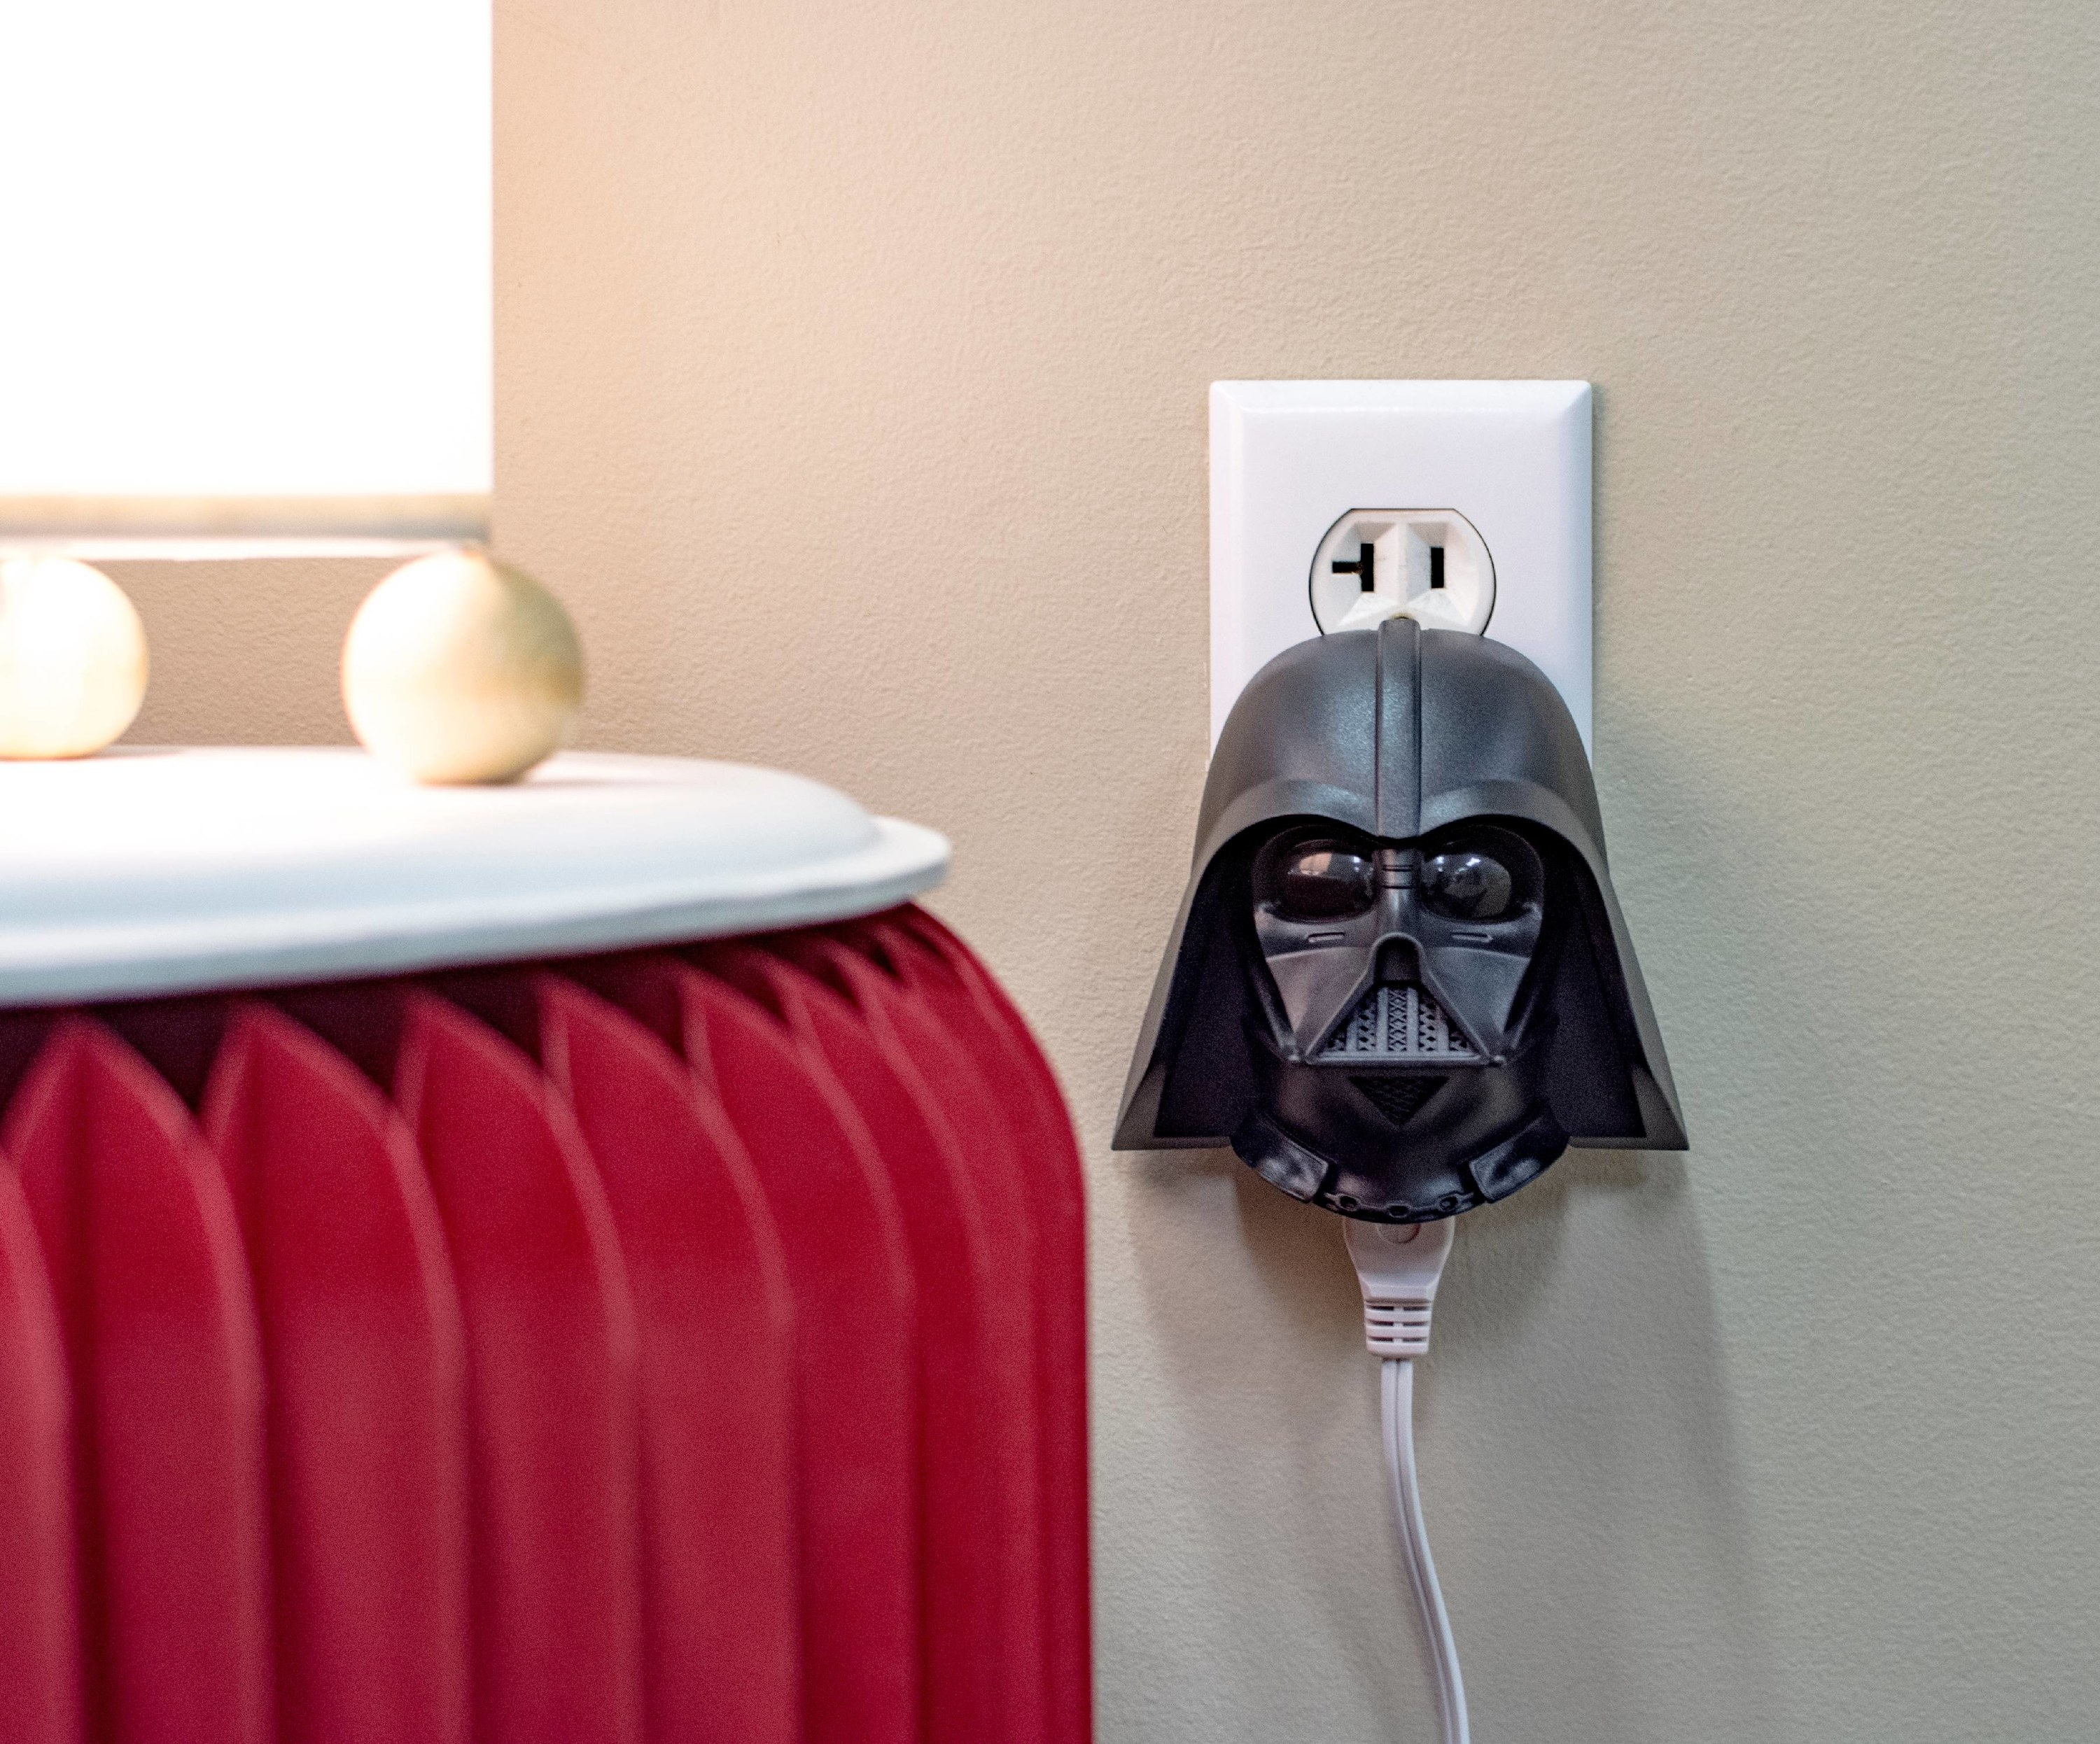 darth vadar face plugged into the wall with a lap plugged into it